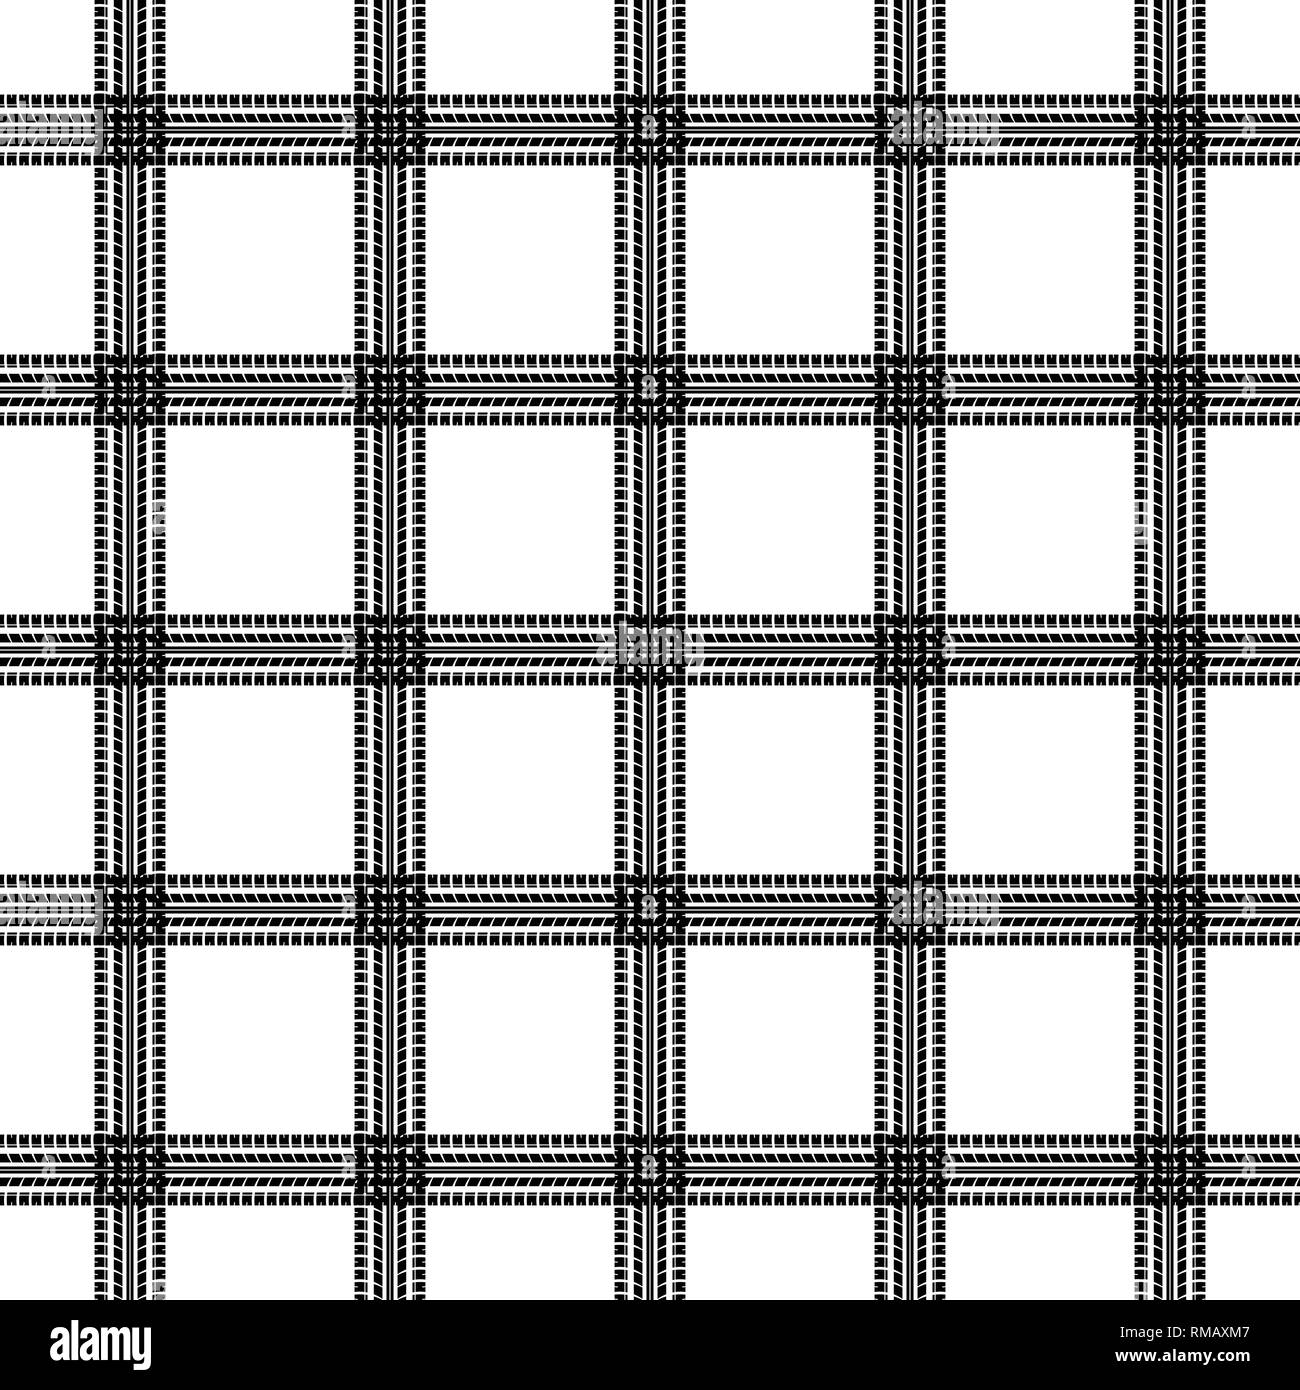 Black seamless horizontal and vertical tire tracks grid isolated on white background - Stock Vector